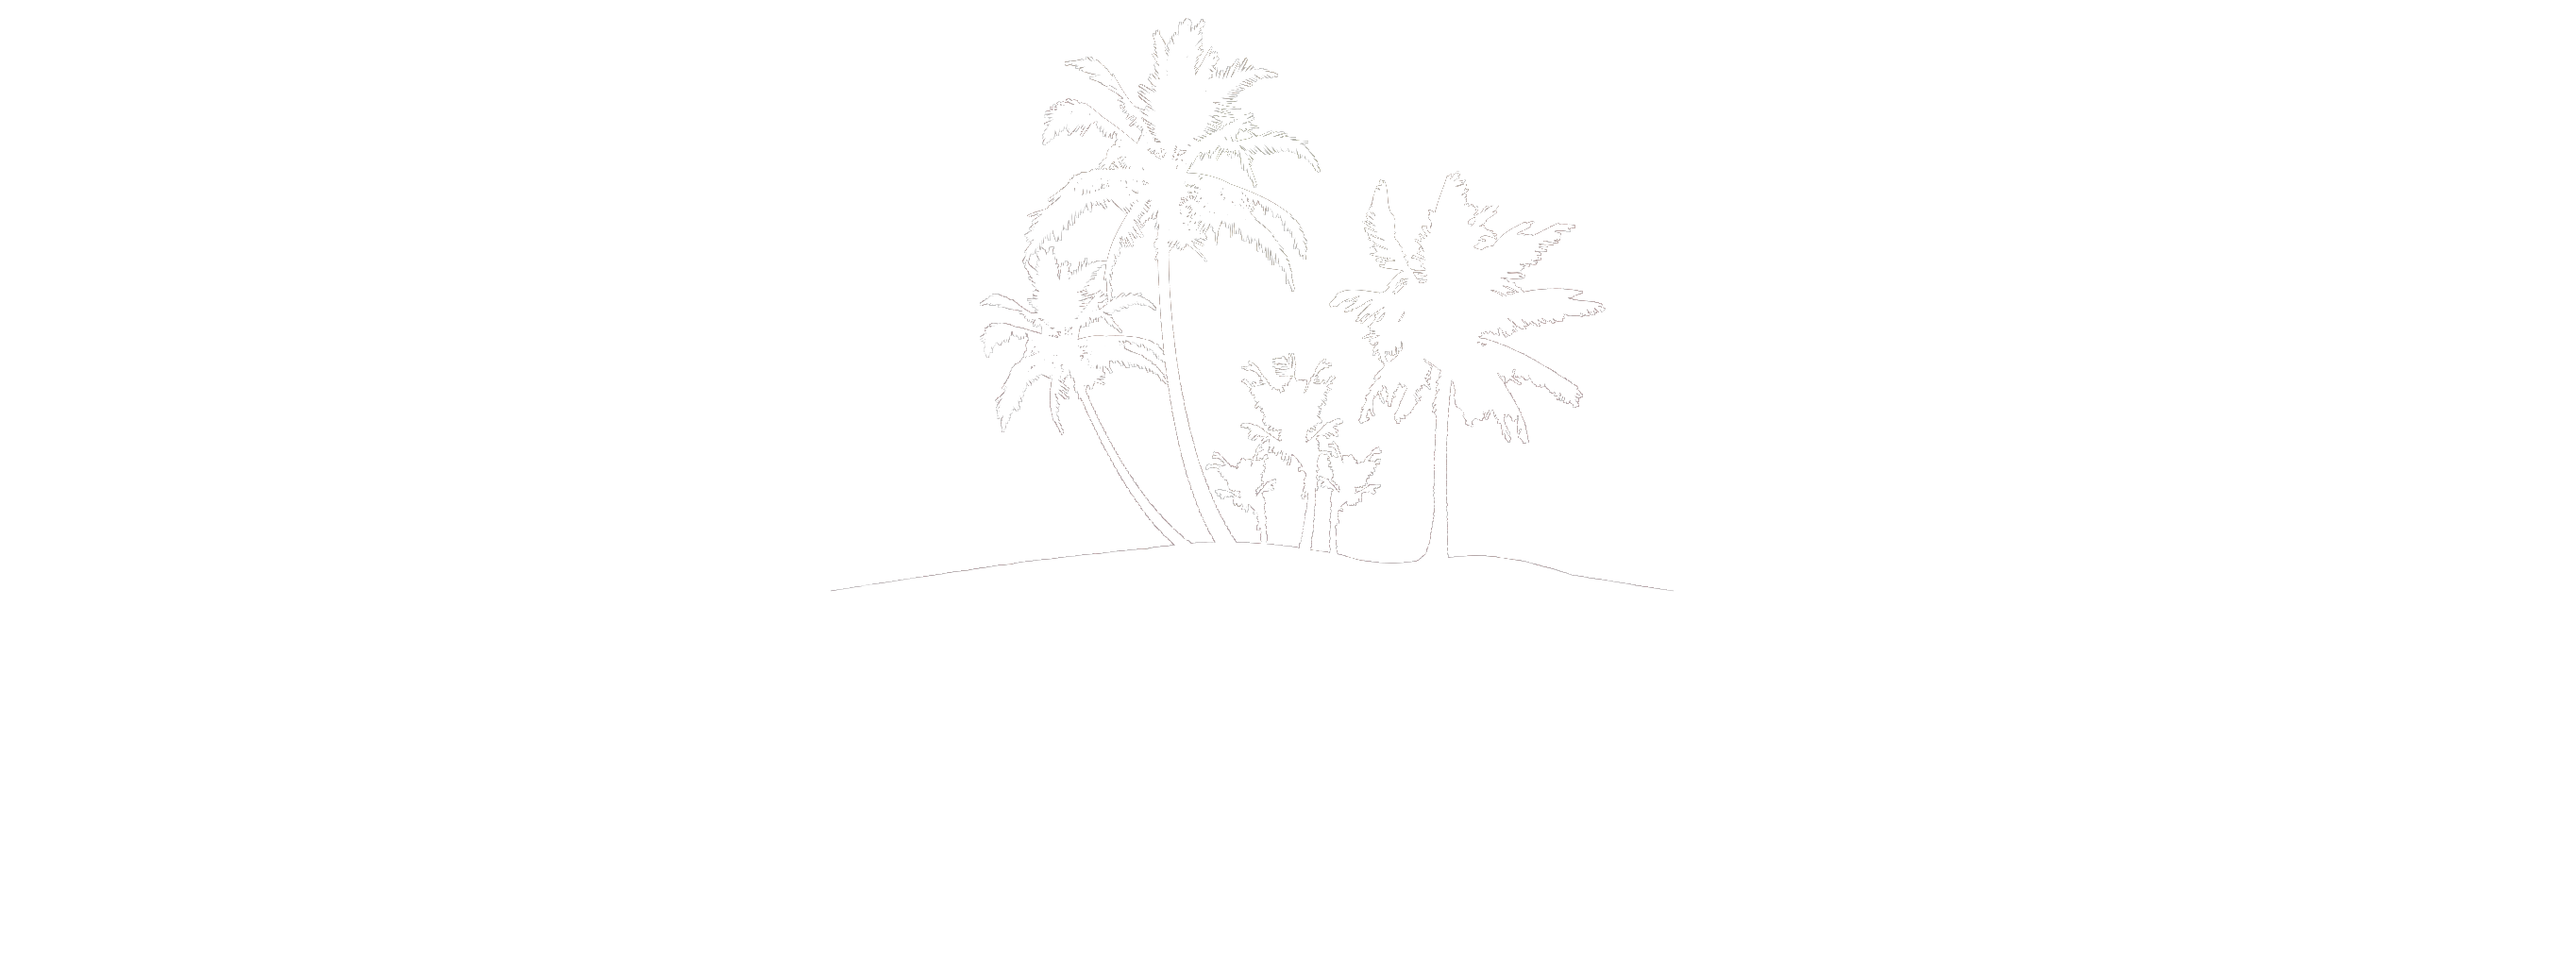 Nature Boat Tours